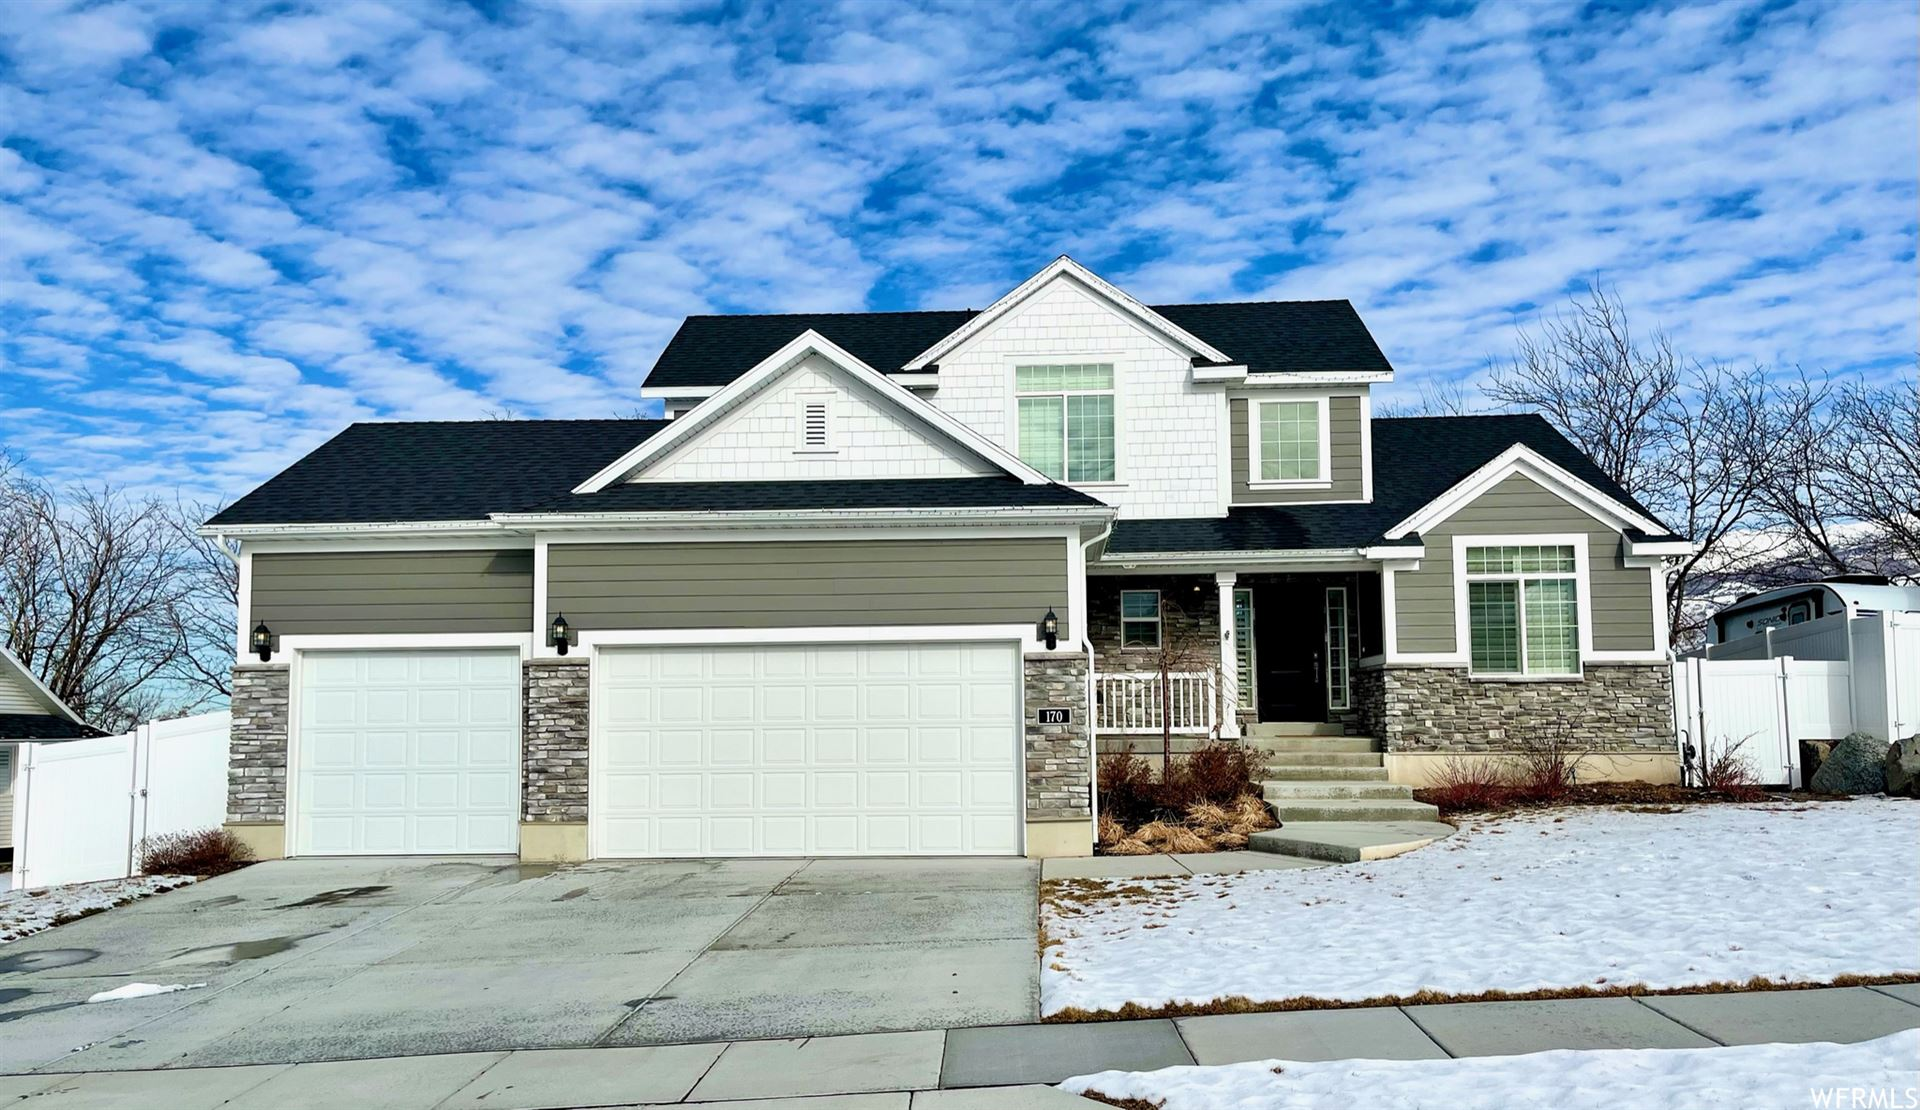 Photo of 170 W 2330 S, Bountiful, UT 84010 (MLS # 1723685)